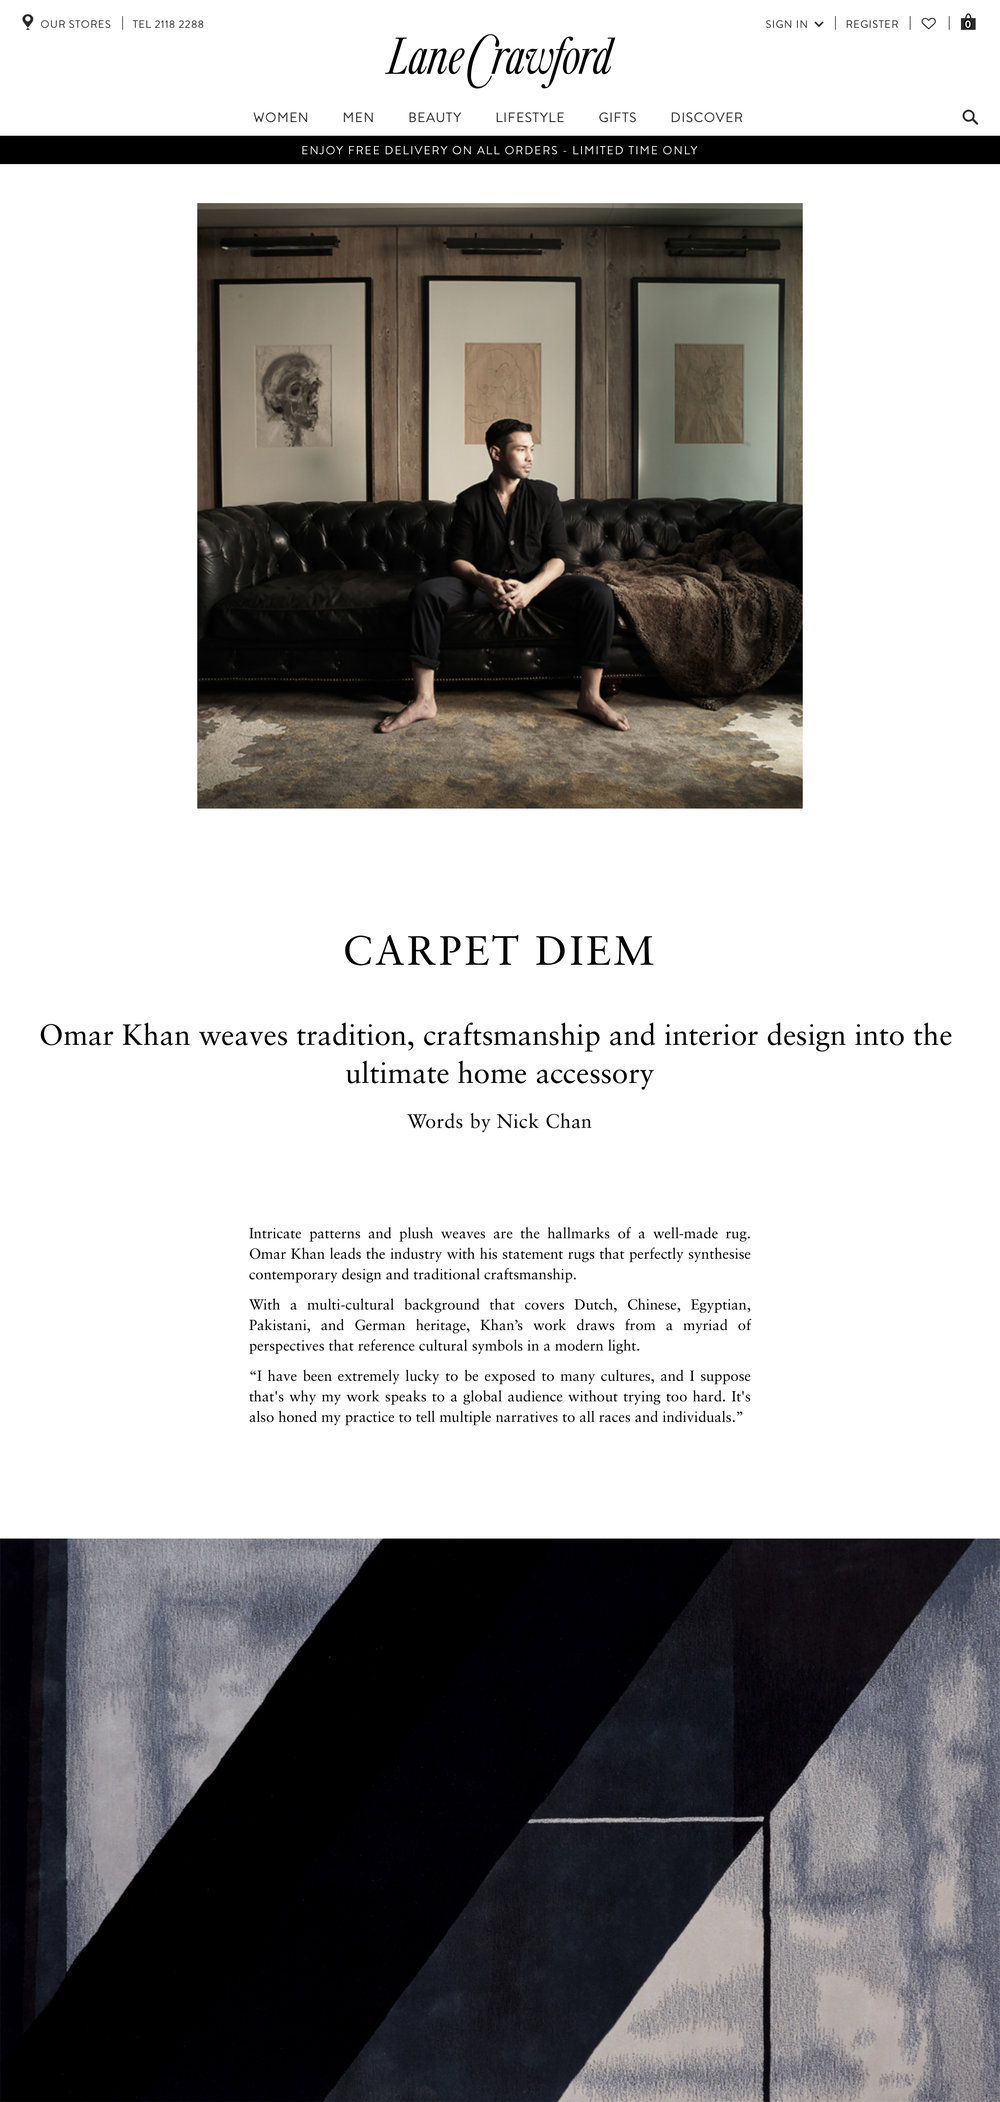 Writing | Lane Crawford | Omar Khan Rugs